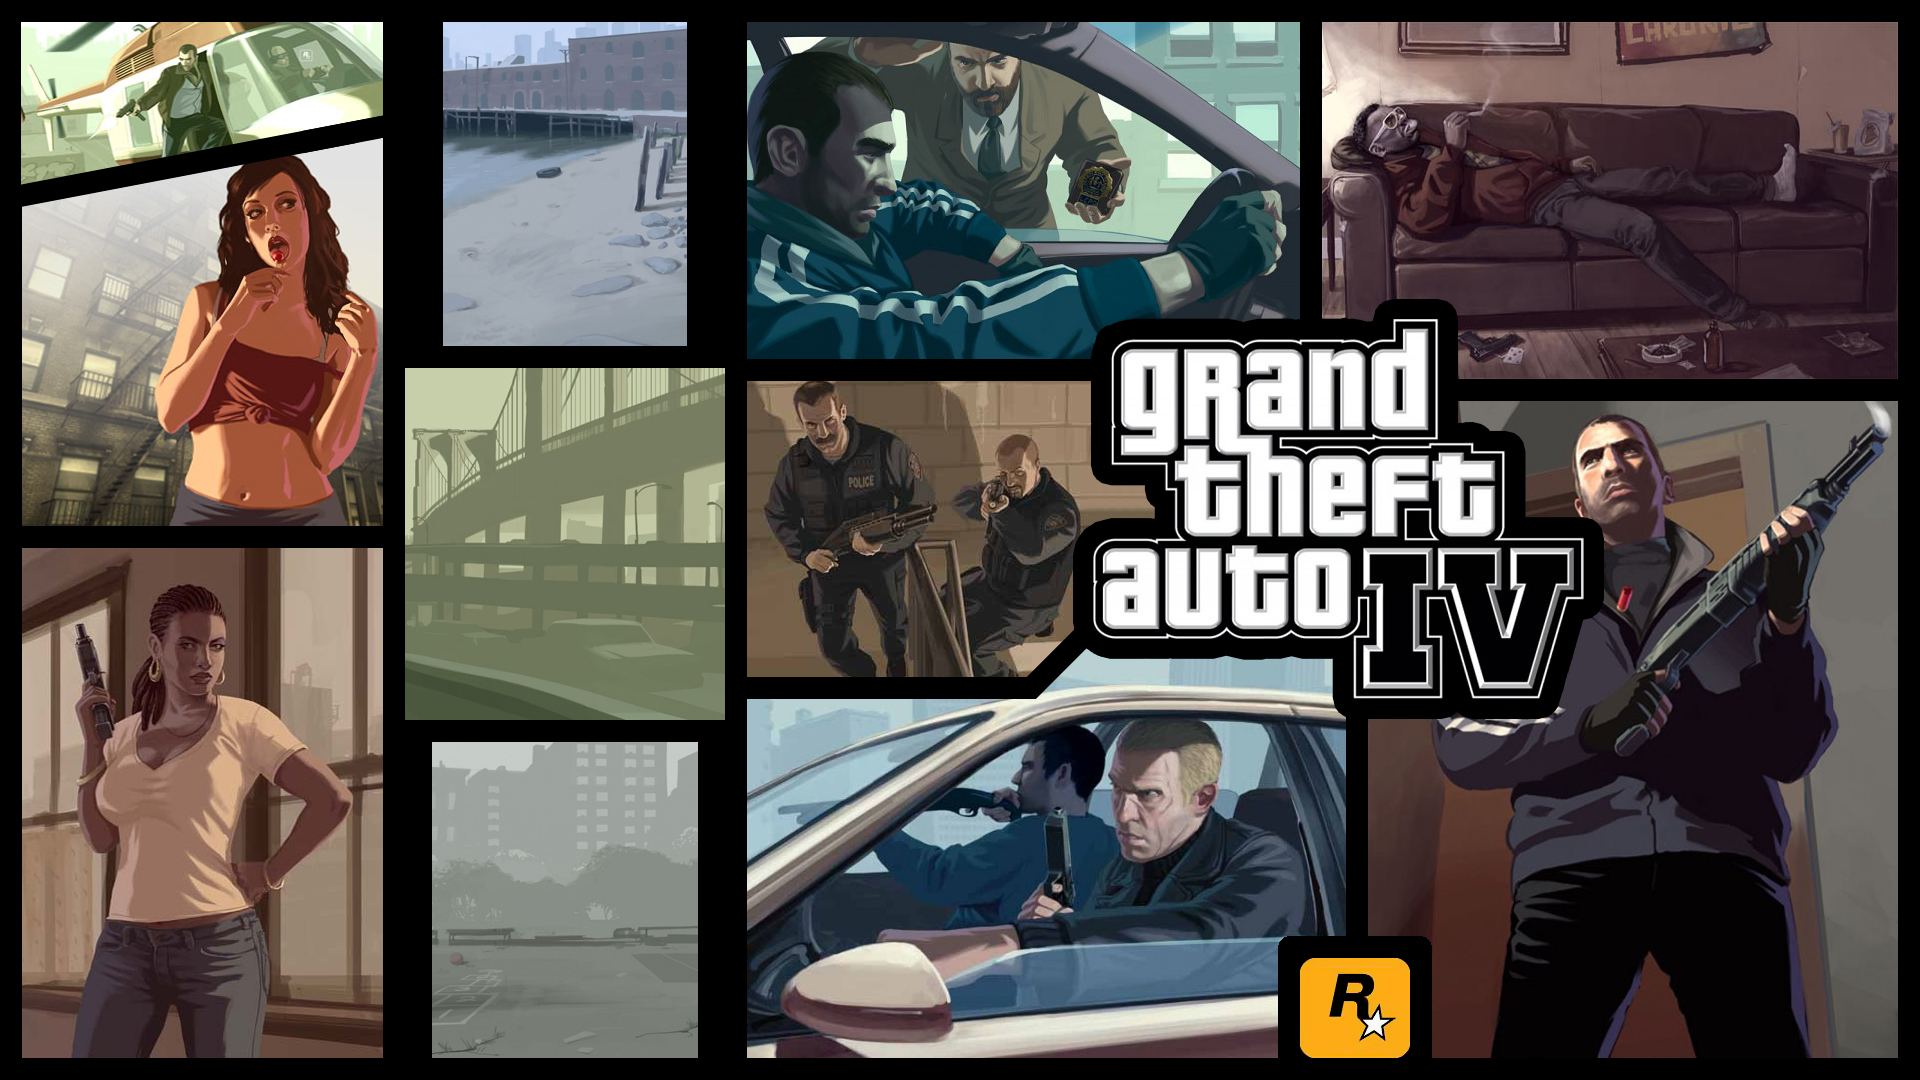 Grand Theft Auto IV Wallpaper - WallpaperSafari